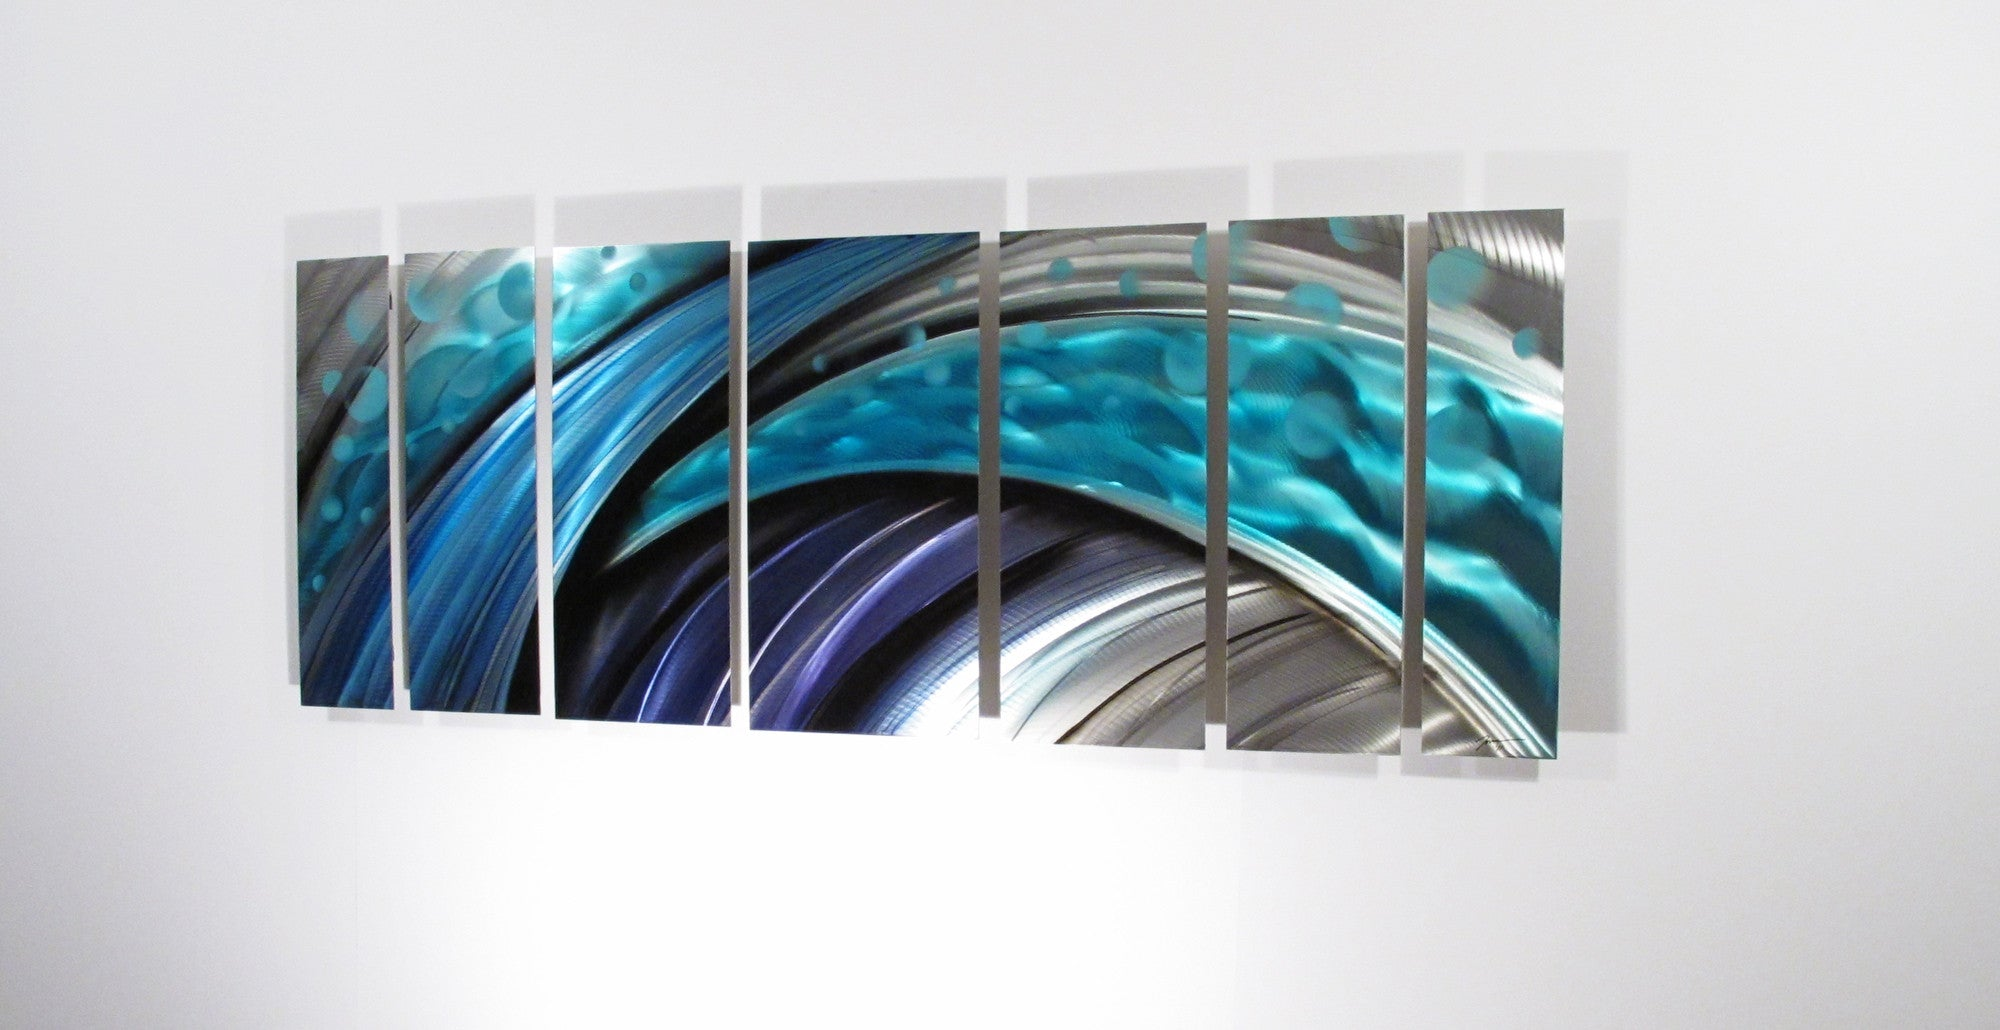 "Blue Metal Wall Art Unique Typhoon"" Large Modern Abstract Metal Wall Art Sculpture Blue  Dv8 Inspiration Design"